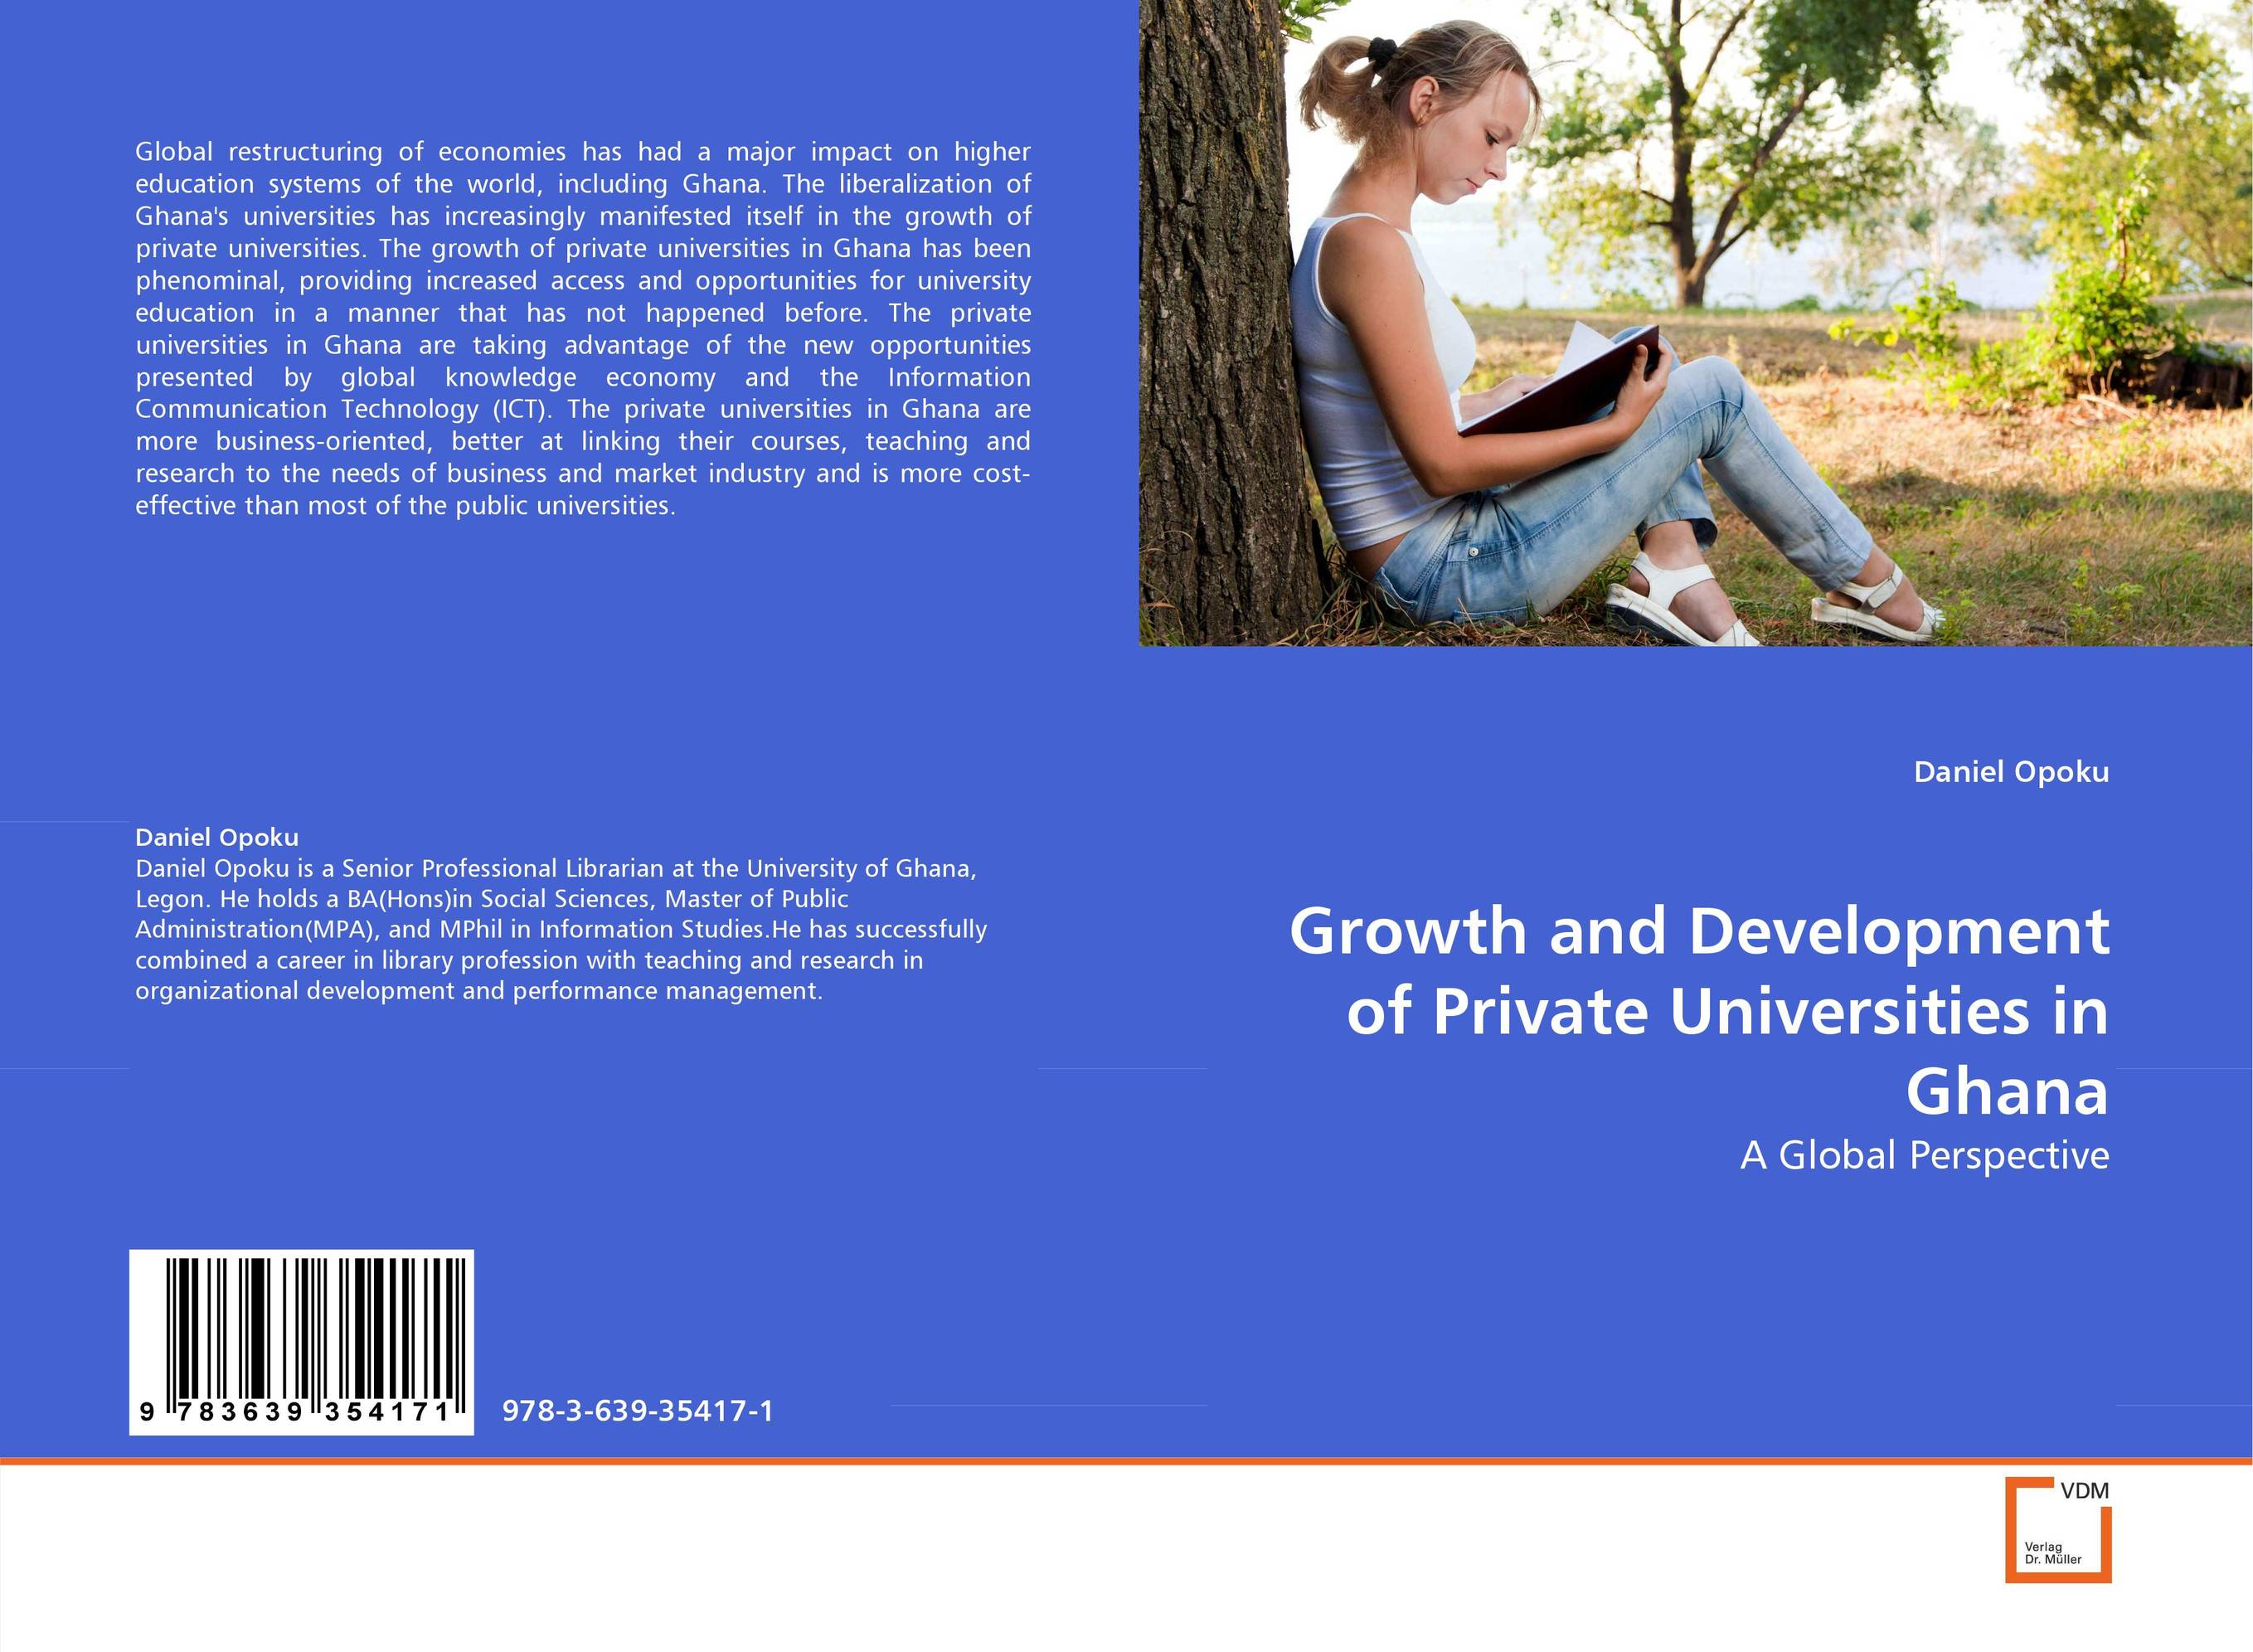 Growth and Development of Private Universities in Ghana